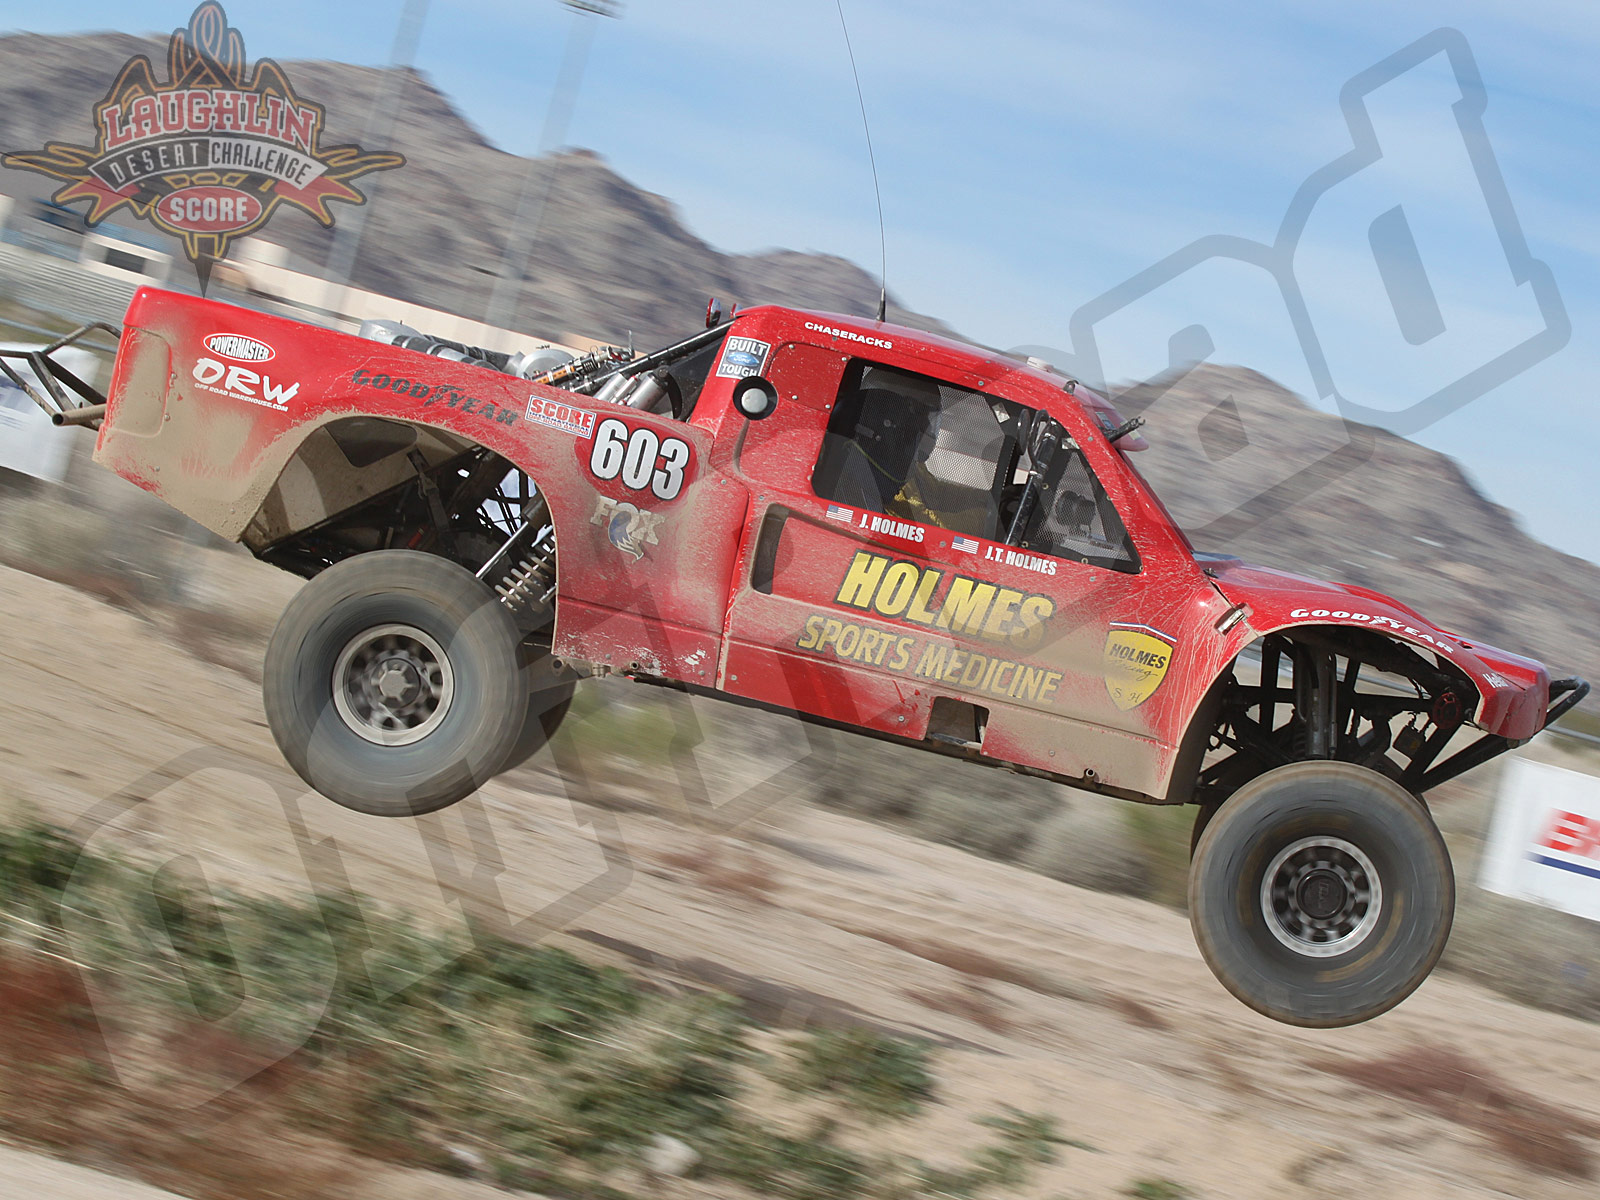 012011or 6632+2011 score laughlin desert challenge+truck classes